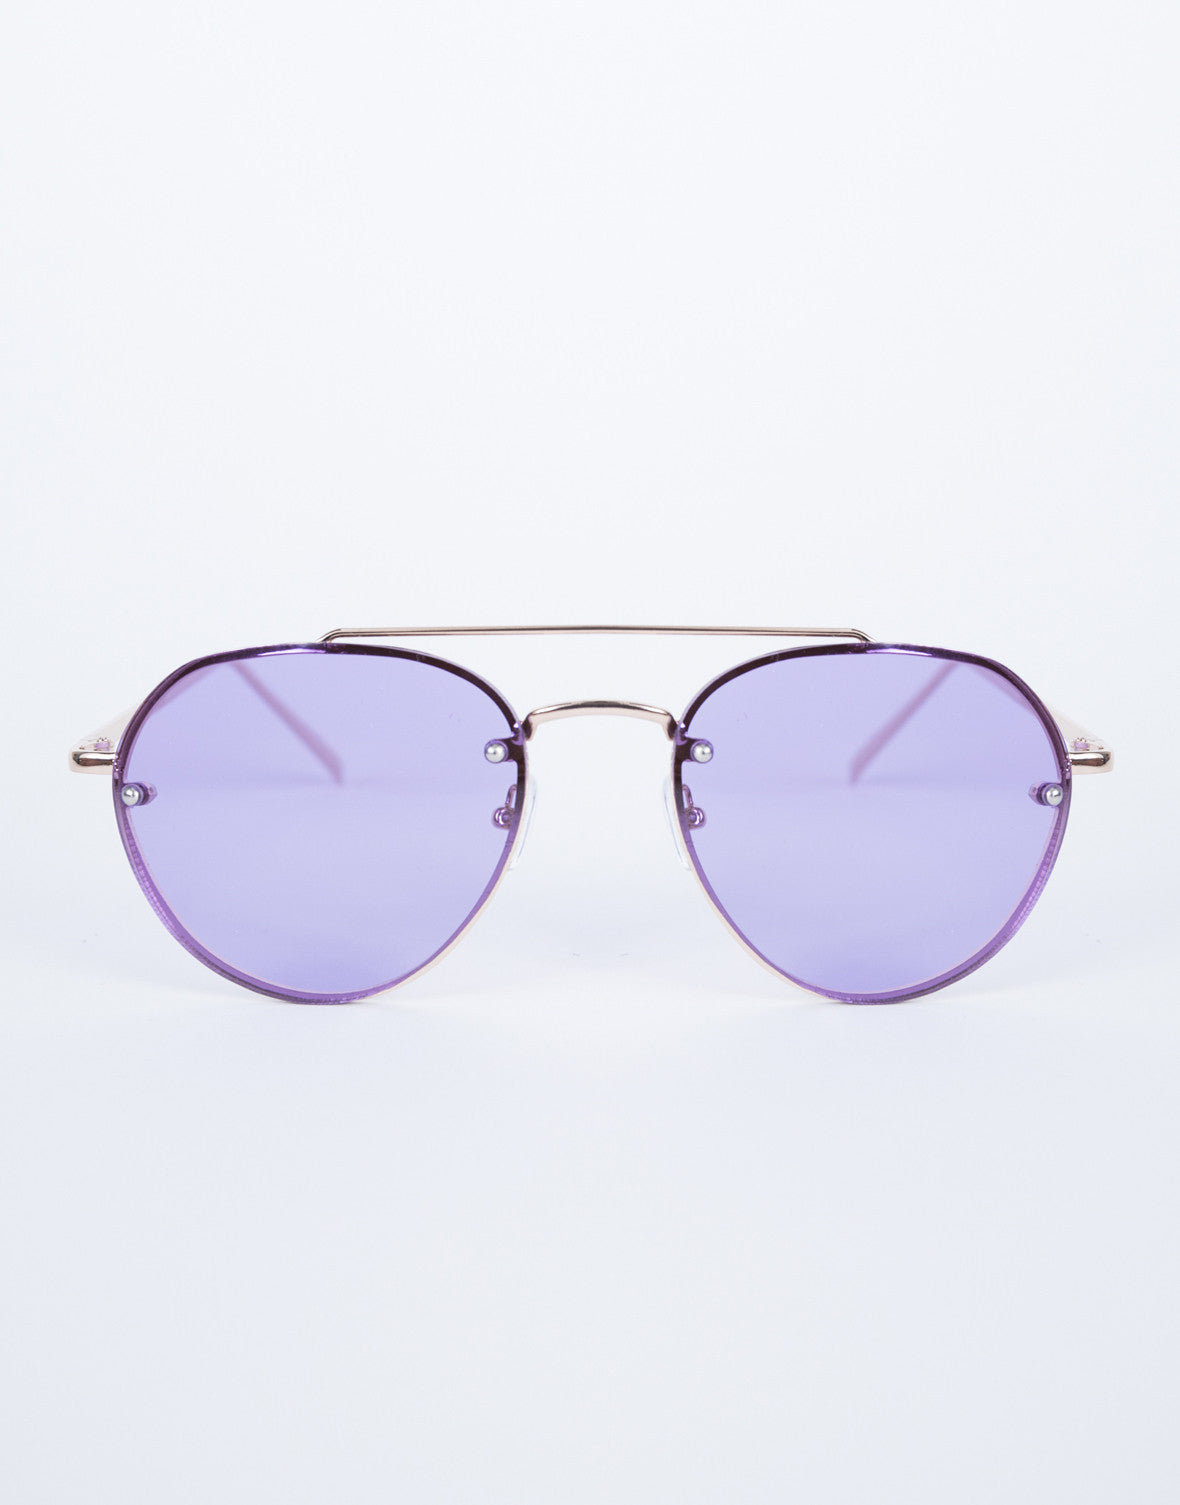 Purple Lainey Colored Aviators - Front View